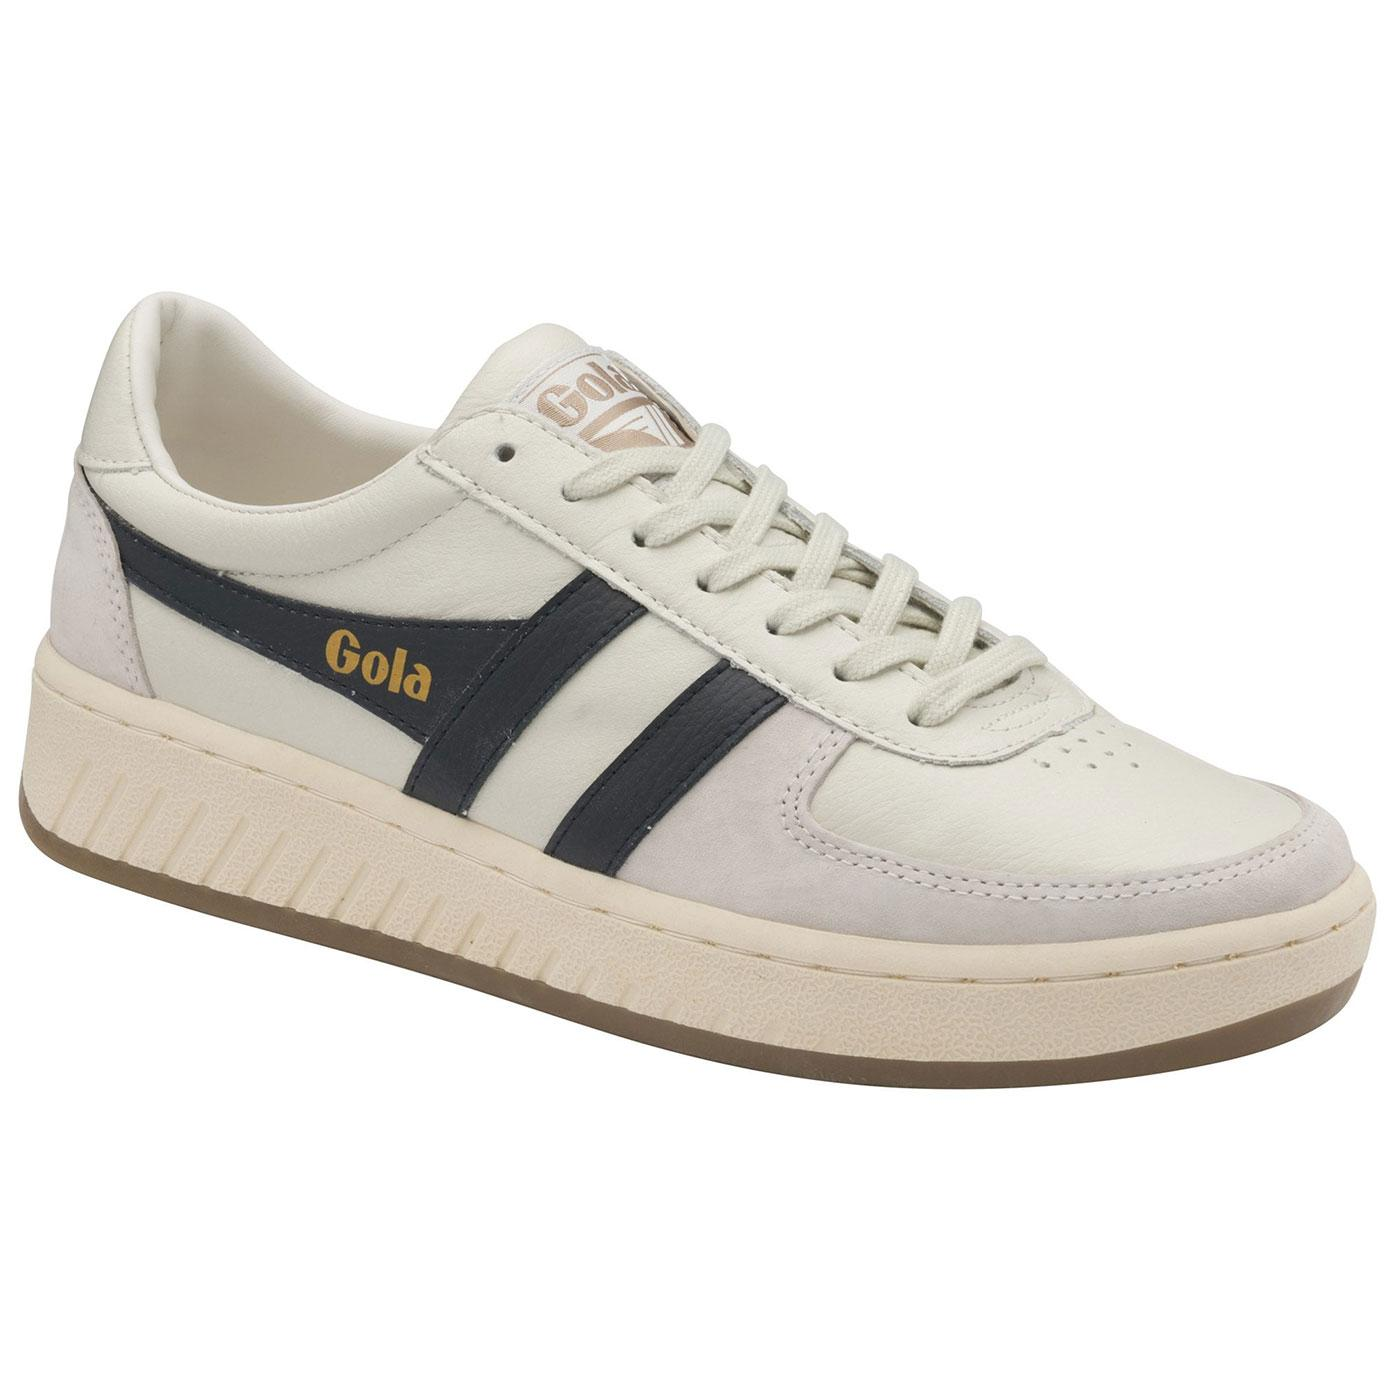 Grandslam 78 GOLA Retro Trainers (Off White/Navy)